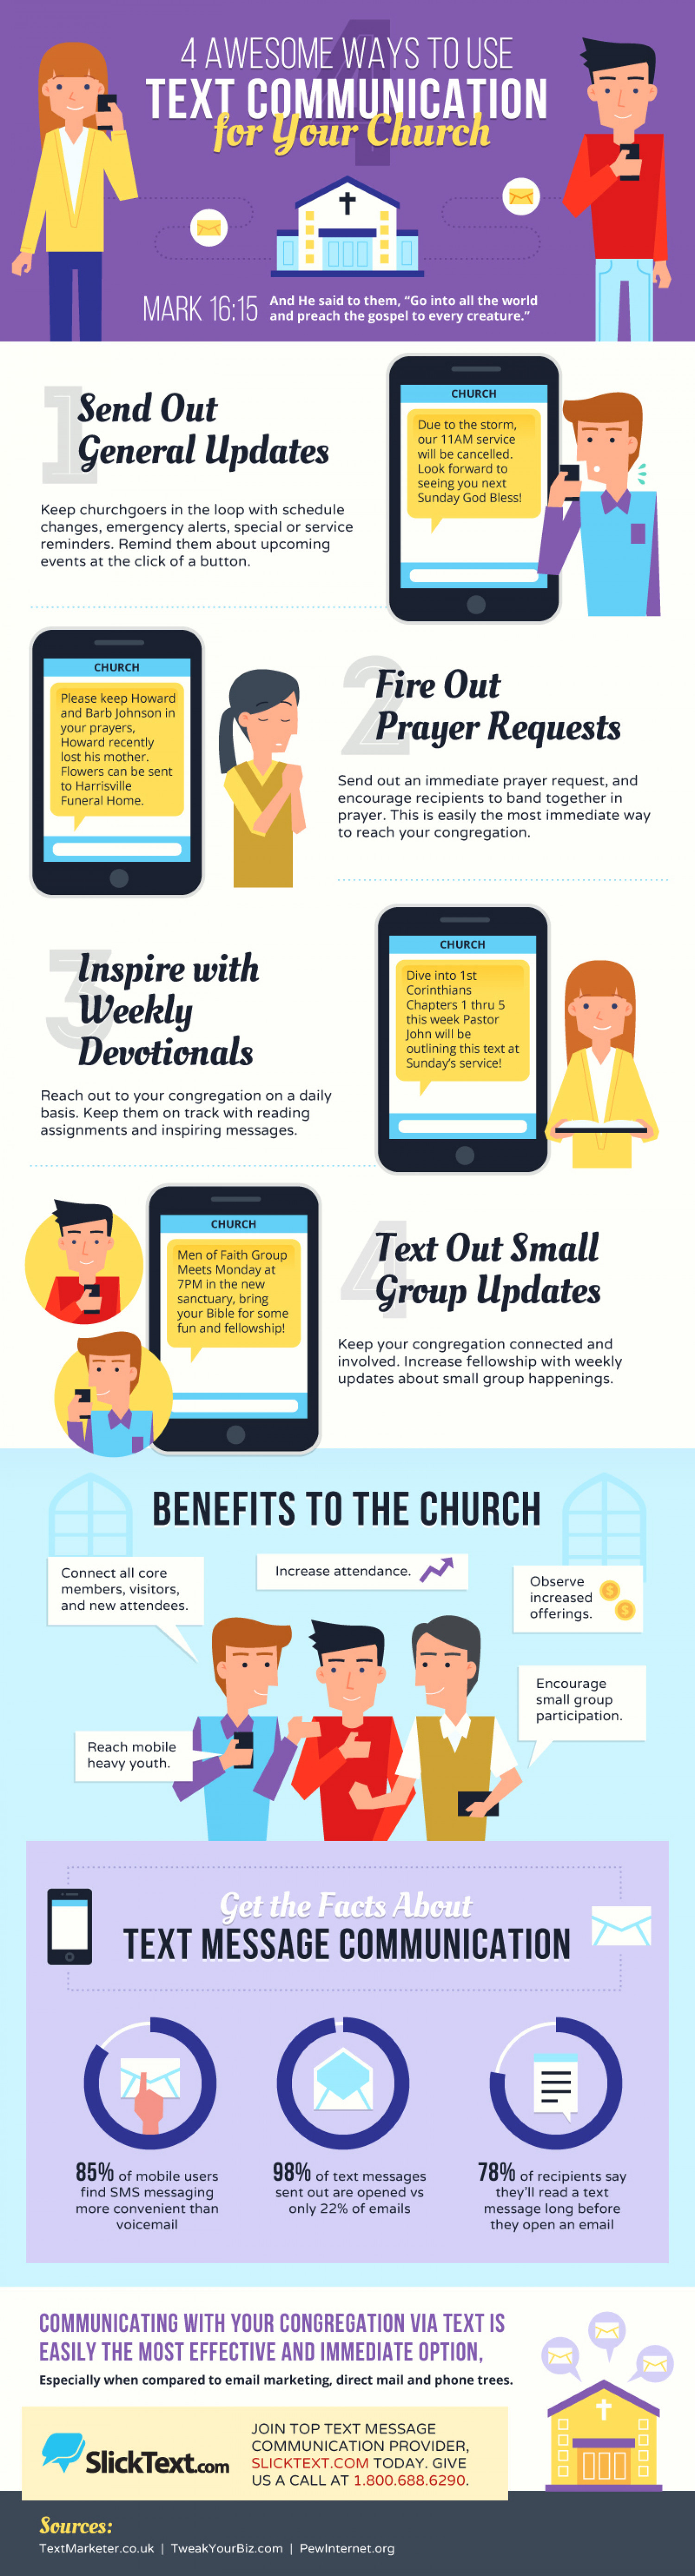 4 Awesome Ways to Use Text Communication for Your Church Infographic